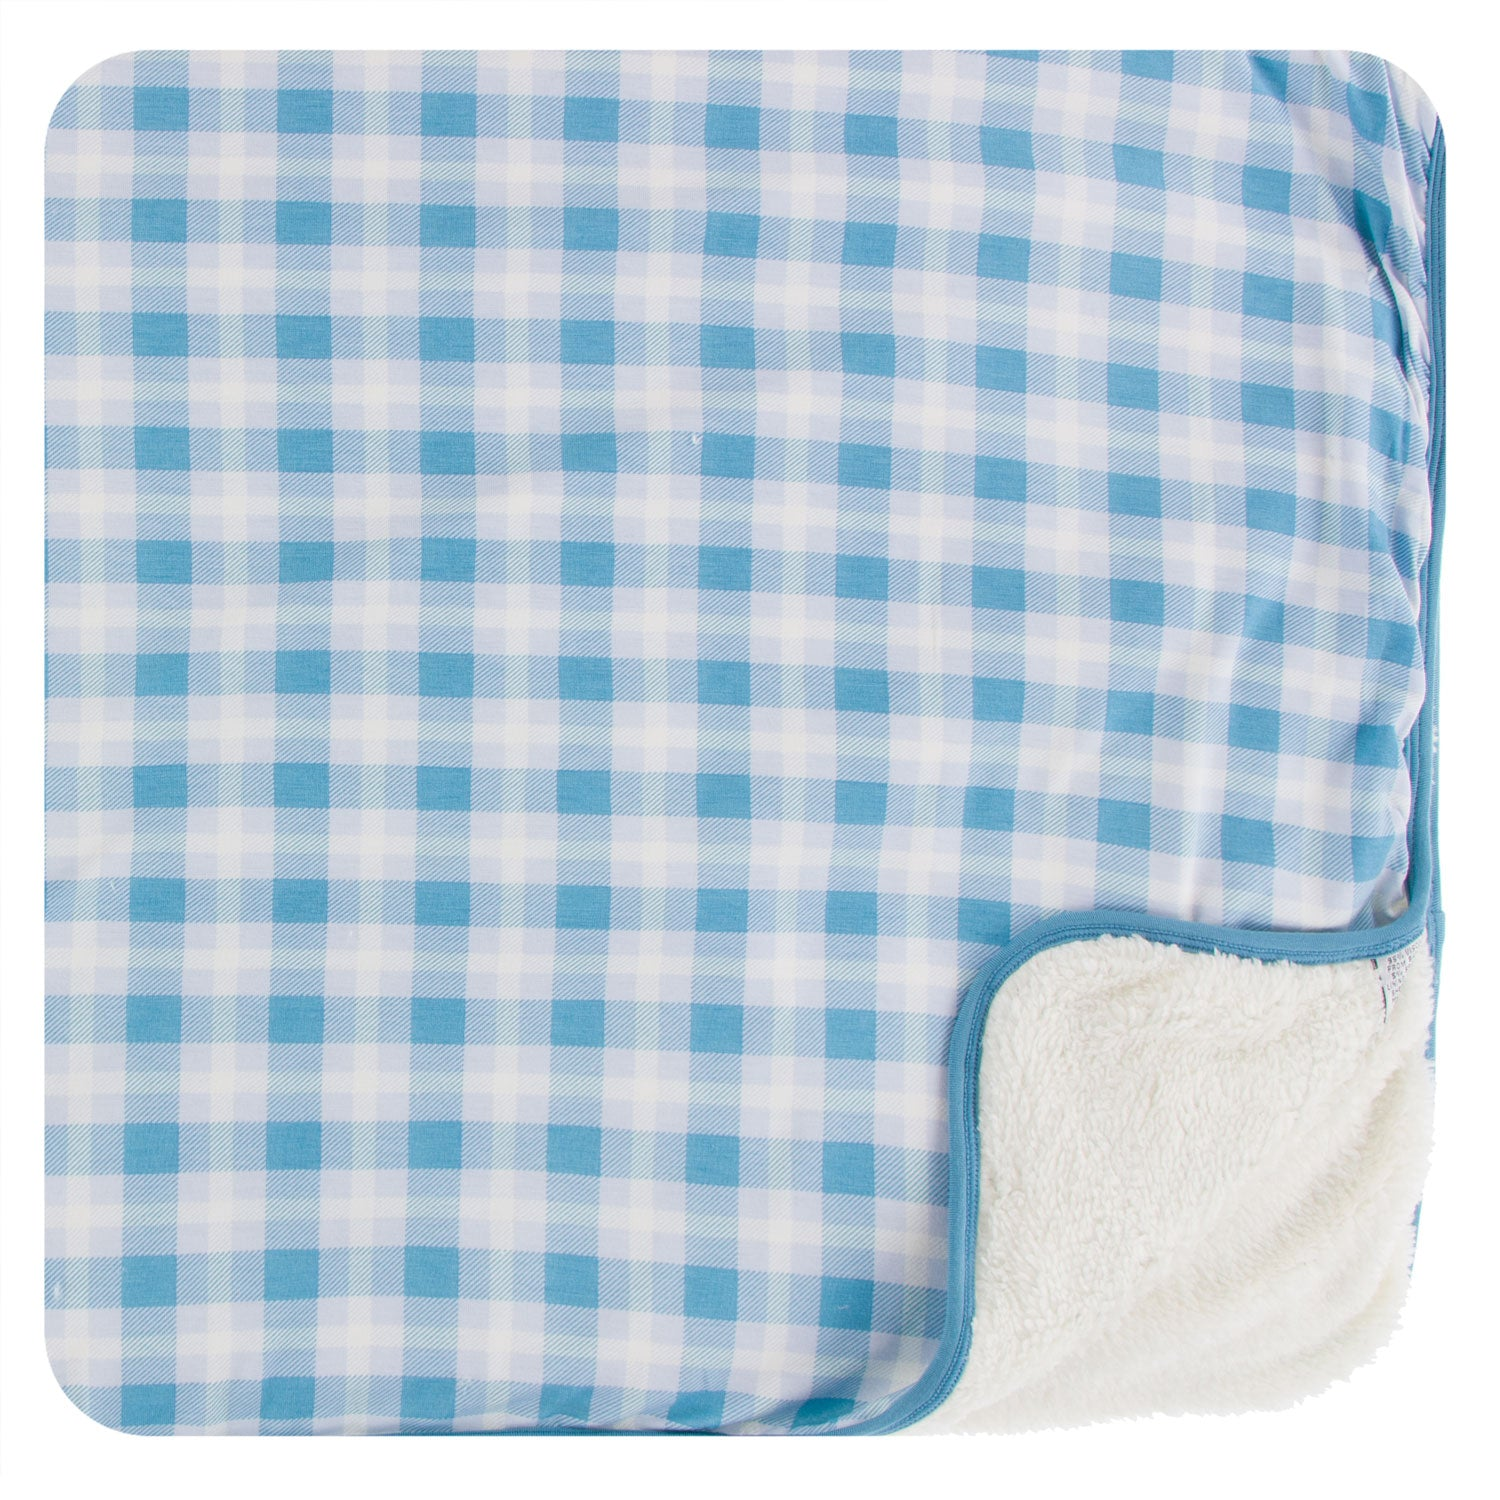 KicKee Pants Sherpa Lined Toddler Blanket - Blue Moon 2020 Holiday Plaid